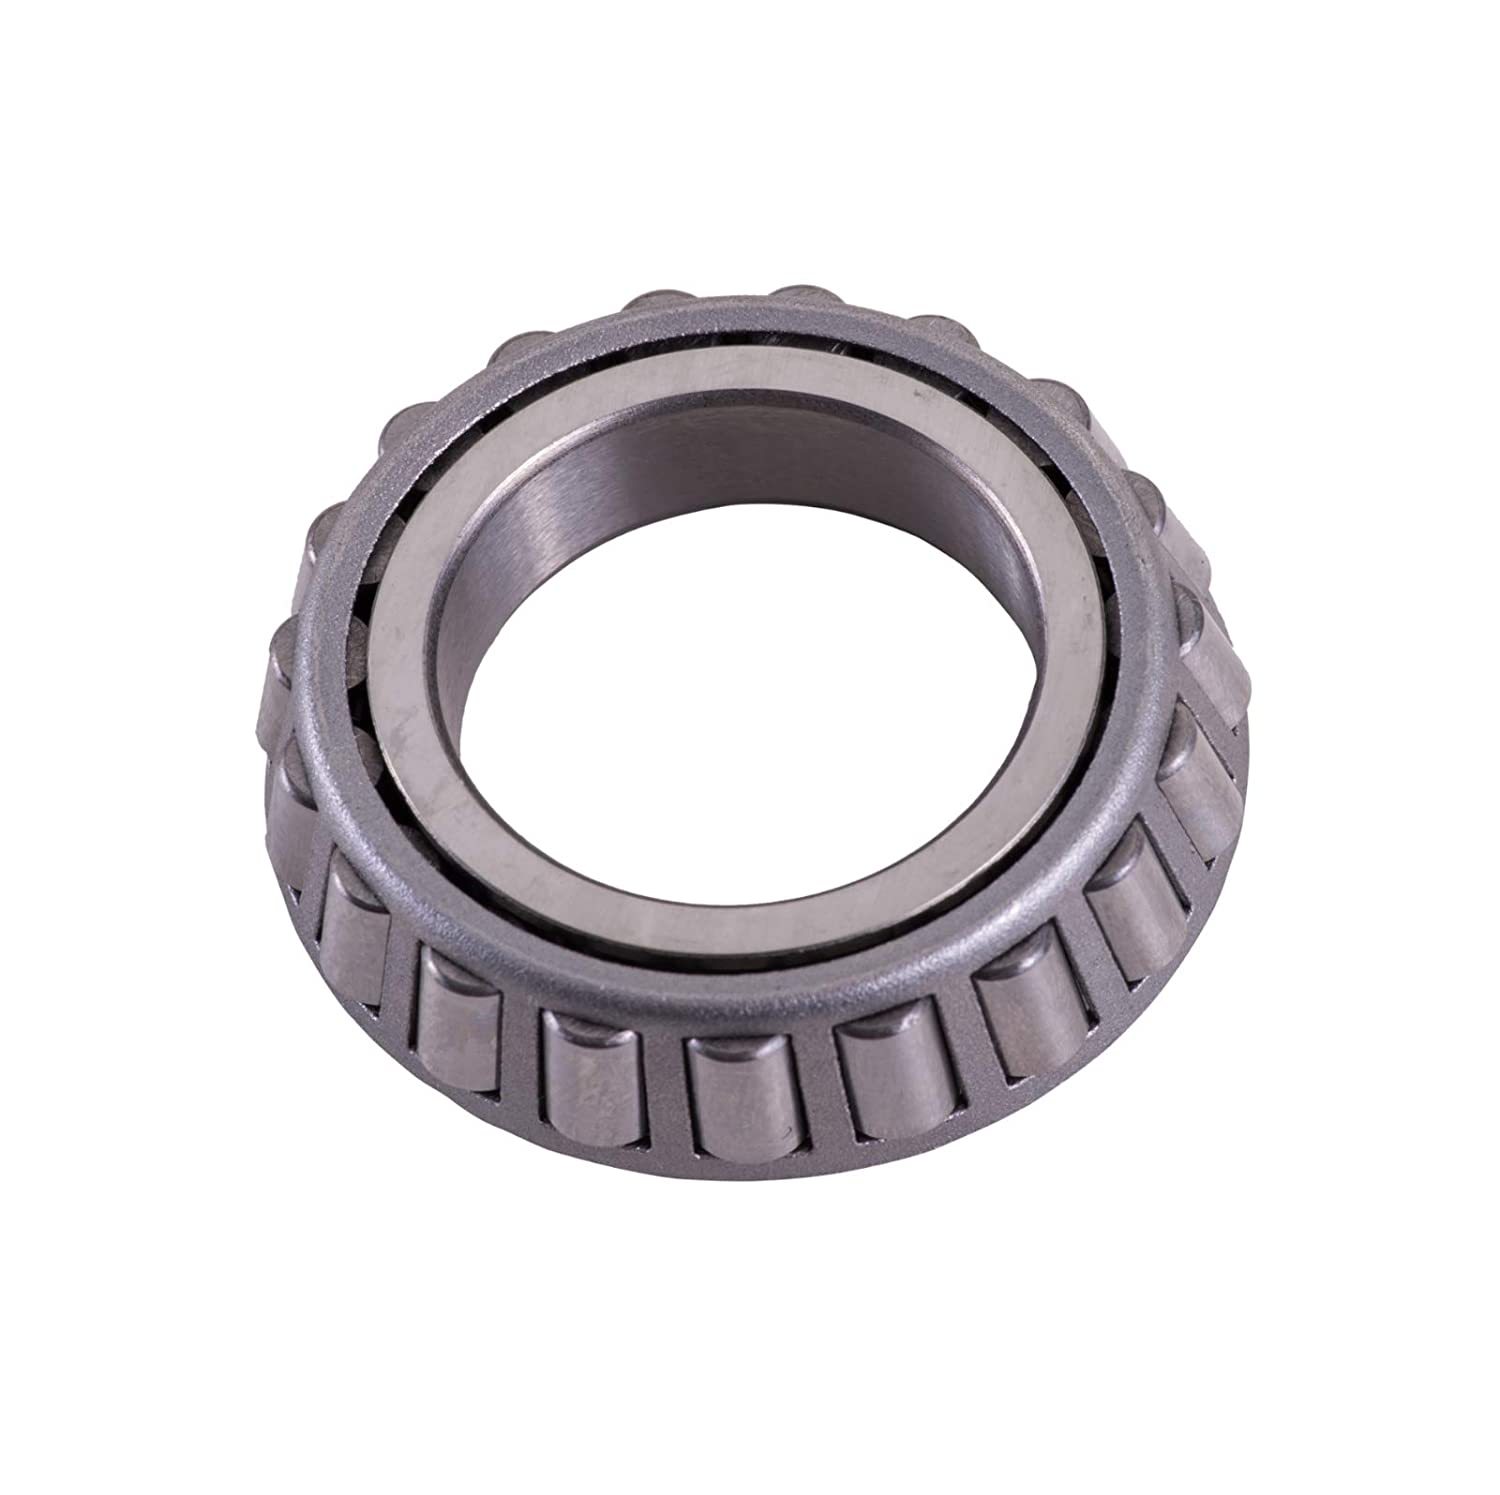 400//500 1997-2002 East Lake Axle front wheel bearings /& seals compatible with Polaris Explorer 250//300